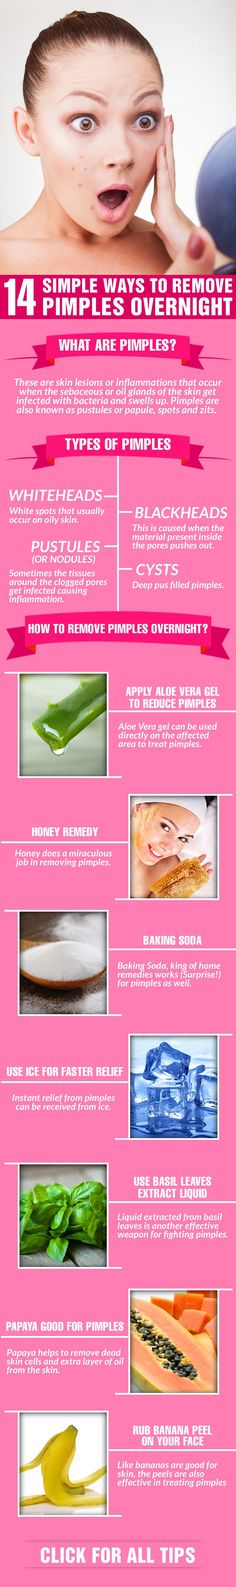 How To Get Rid of Pimples Overnight - 18 Simple Home Remedies